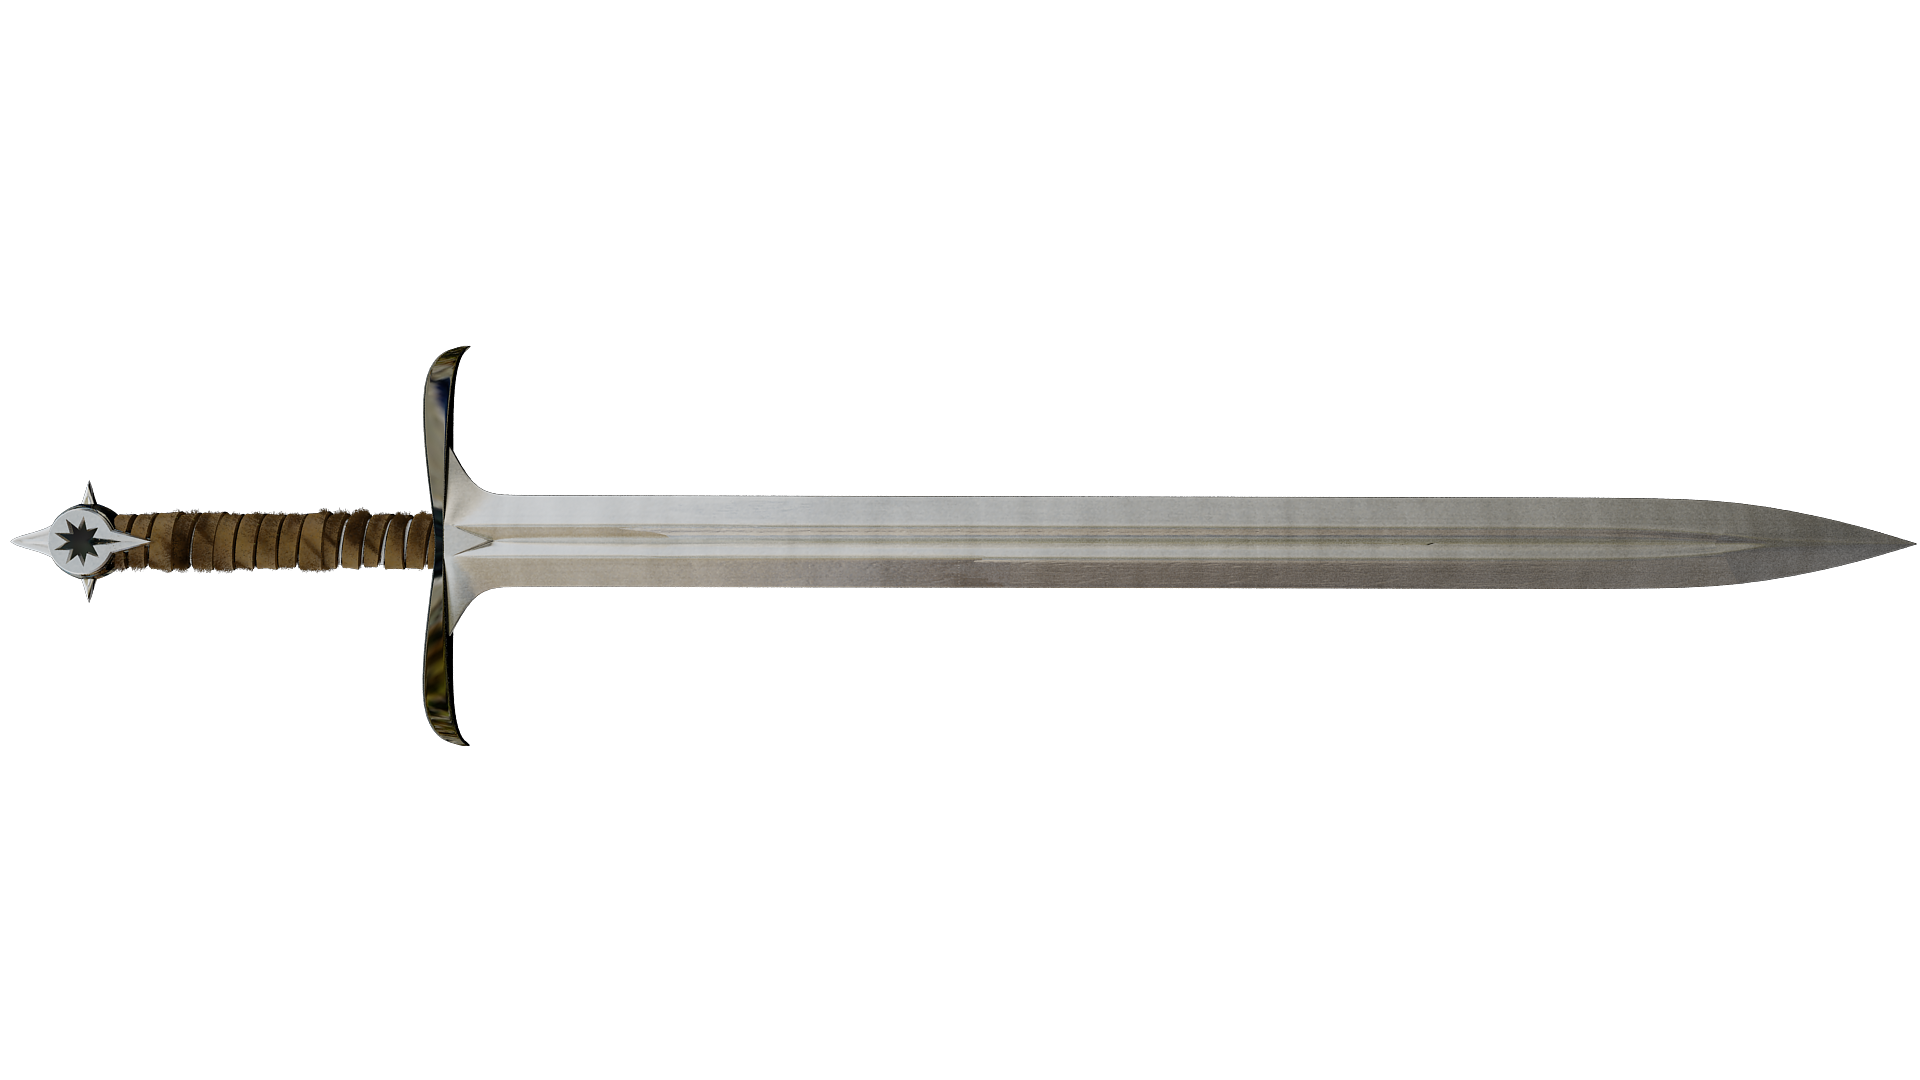 Topic des absences - Page 5 Sword-hd-png-sword-png-image-1920